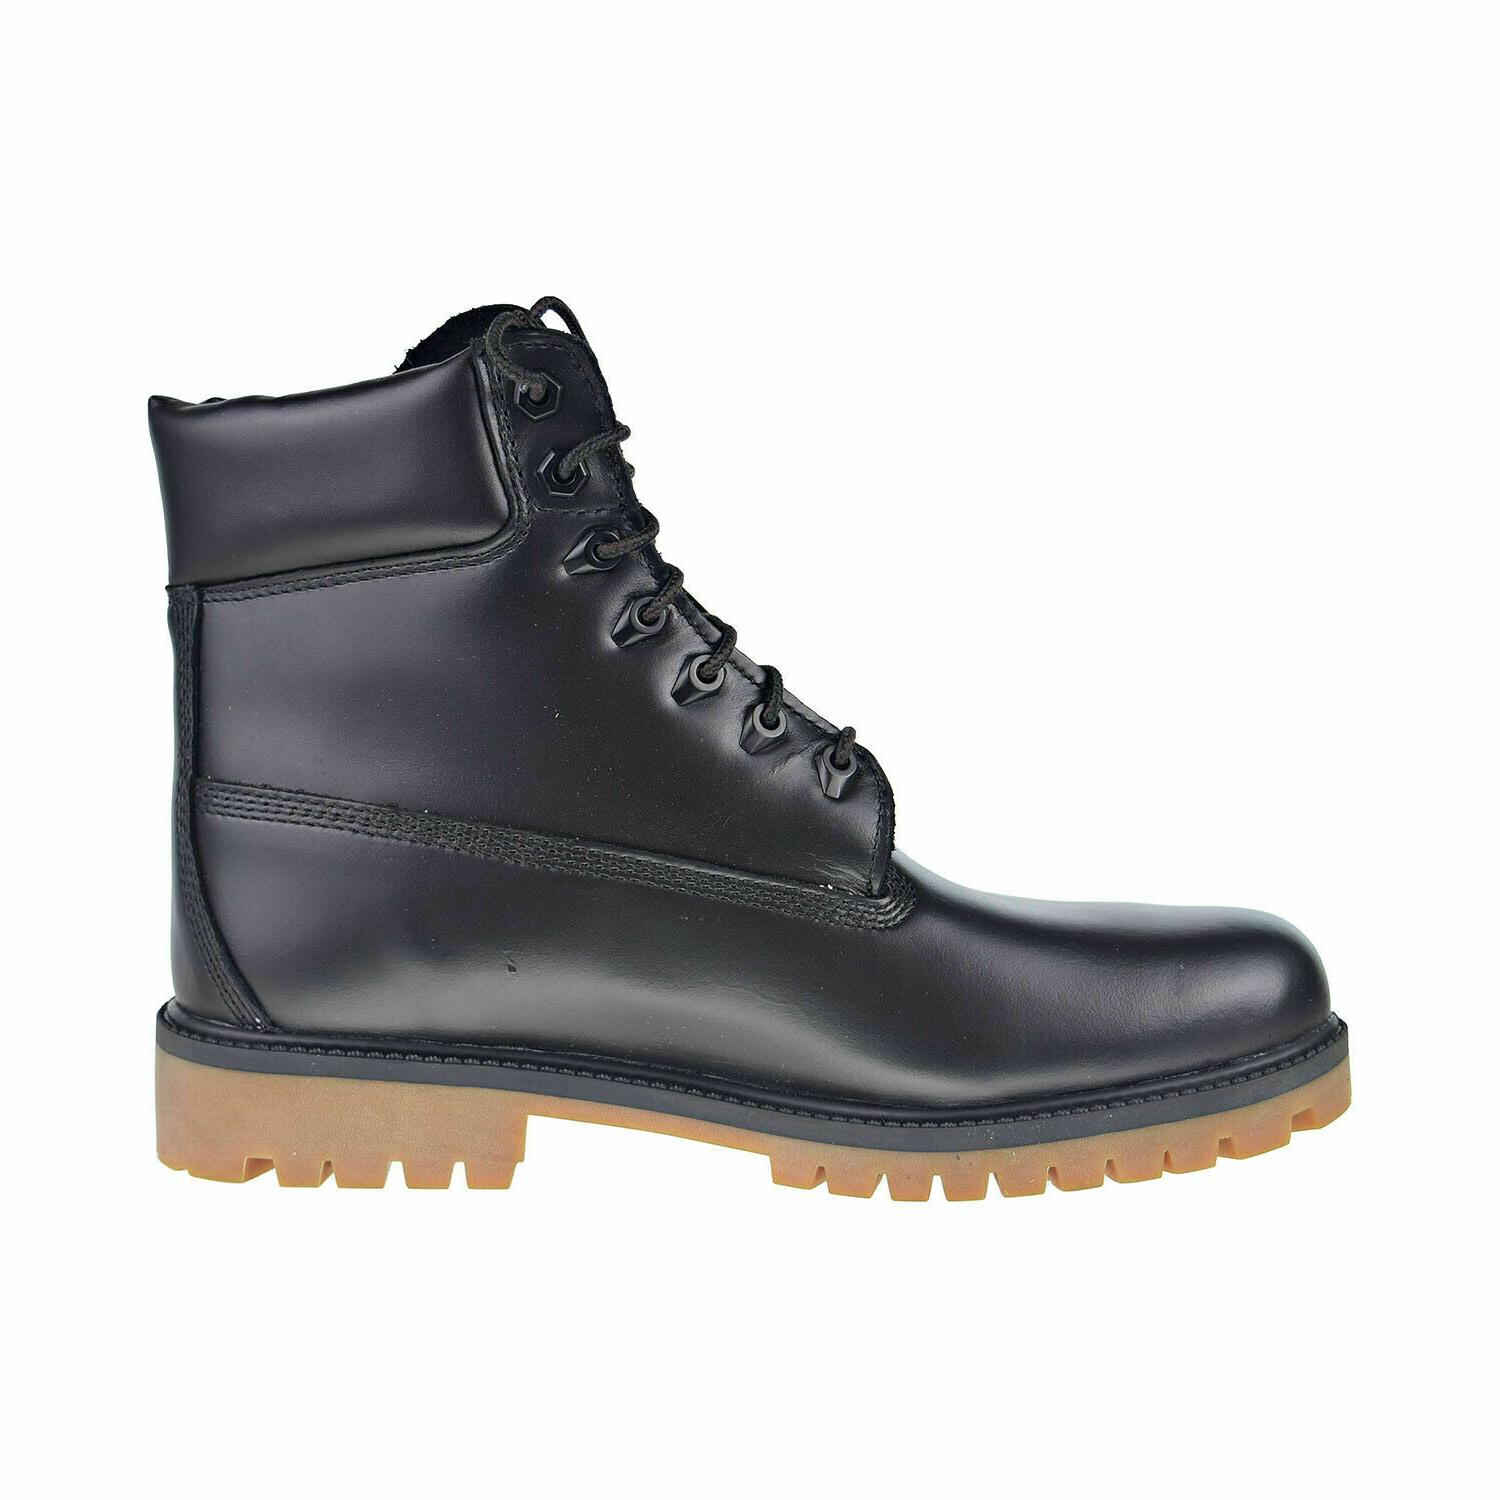 Timberland Heritage 6 WP Men's Full TB0A22WK